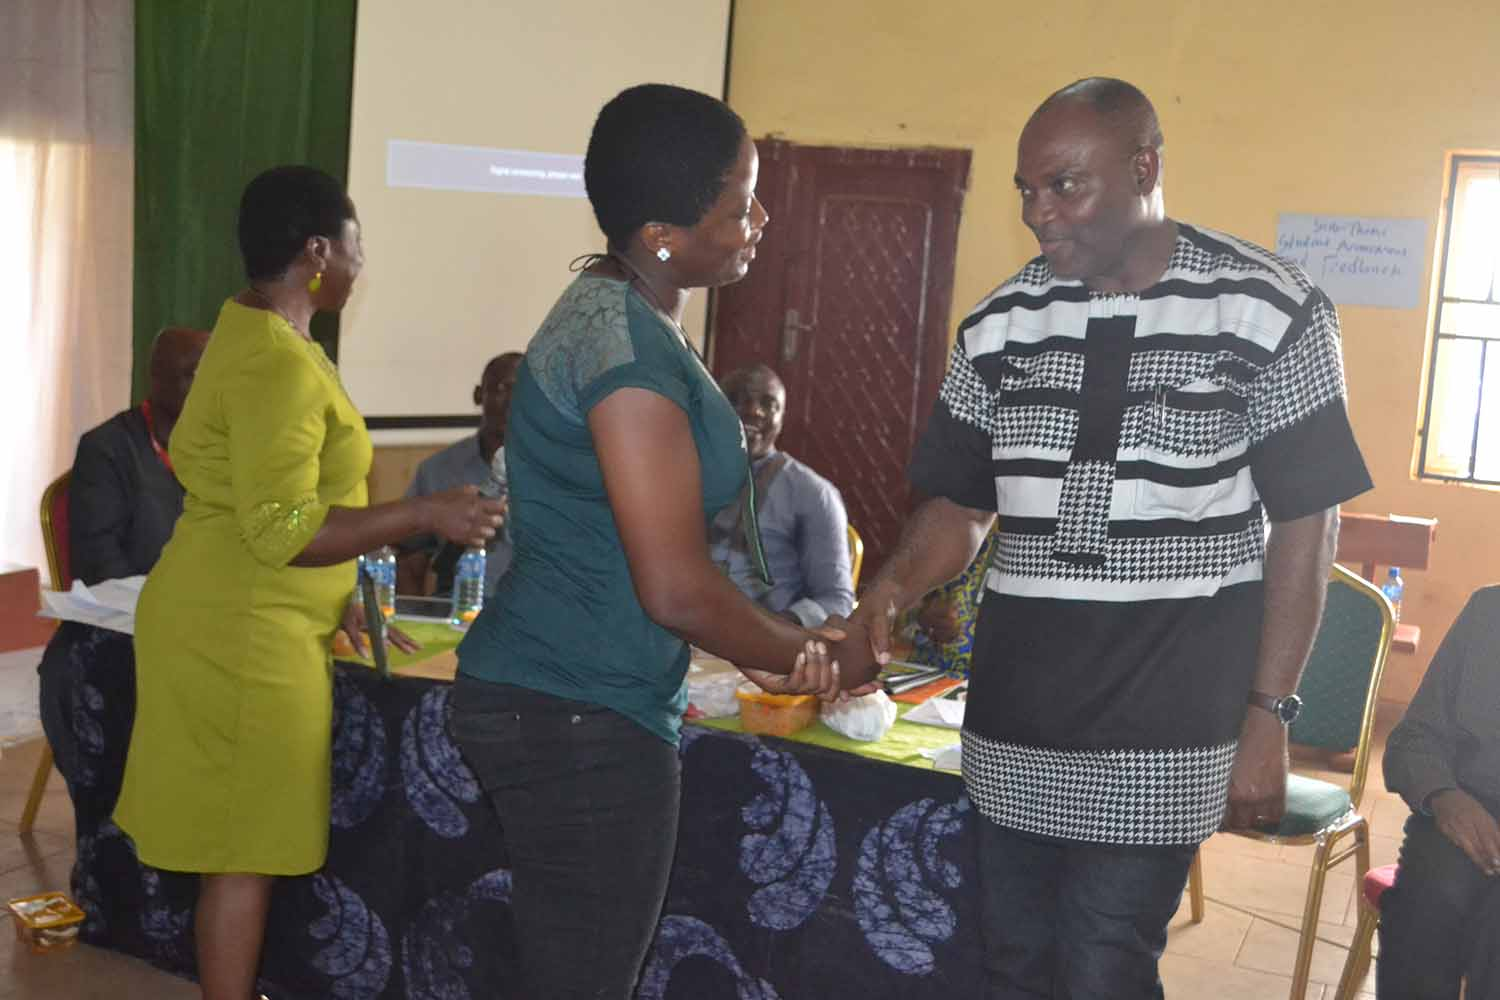 Winners of the Poetry workshop prizes in a hand shake with the Vice Chancellor